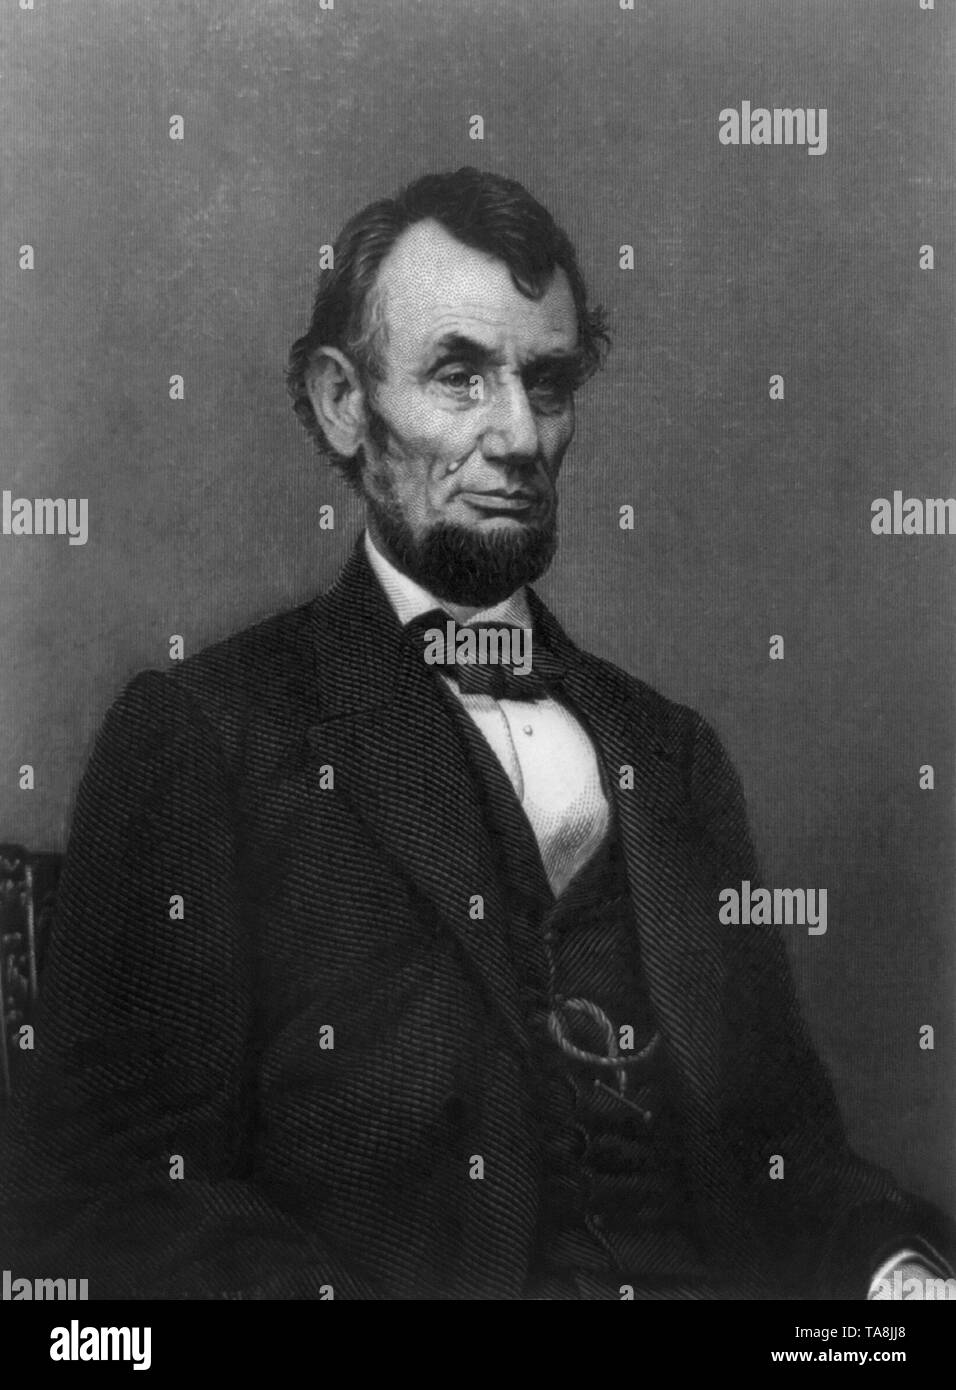 Half Length Portrait of U.S President Abraham Lincoln, Engraving by William G. Jackman from a Photograph by Mathew Brady, 1865 - Stock Image